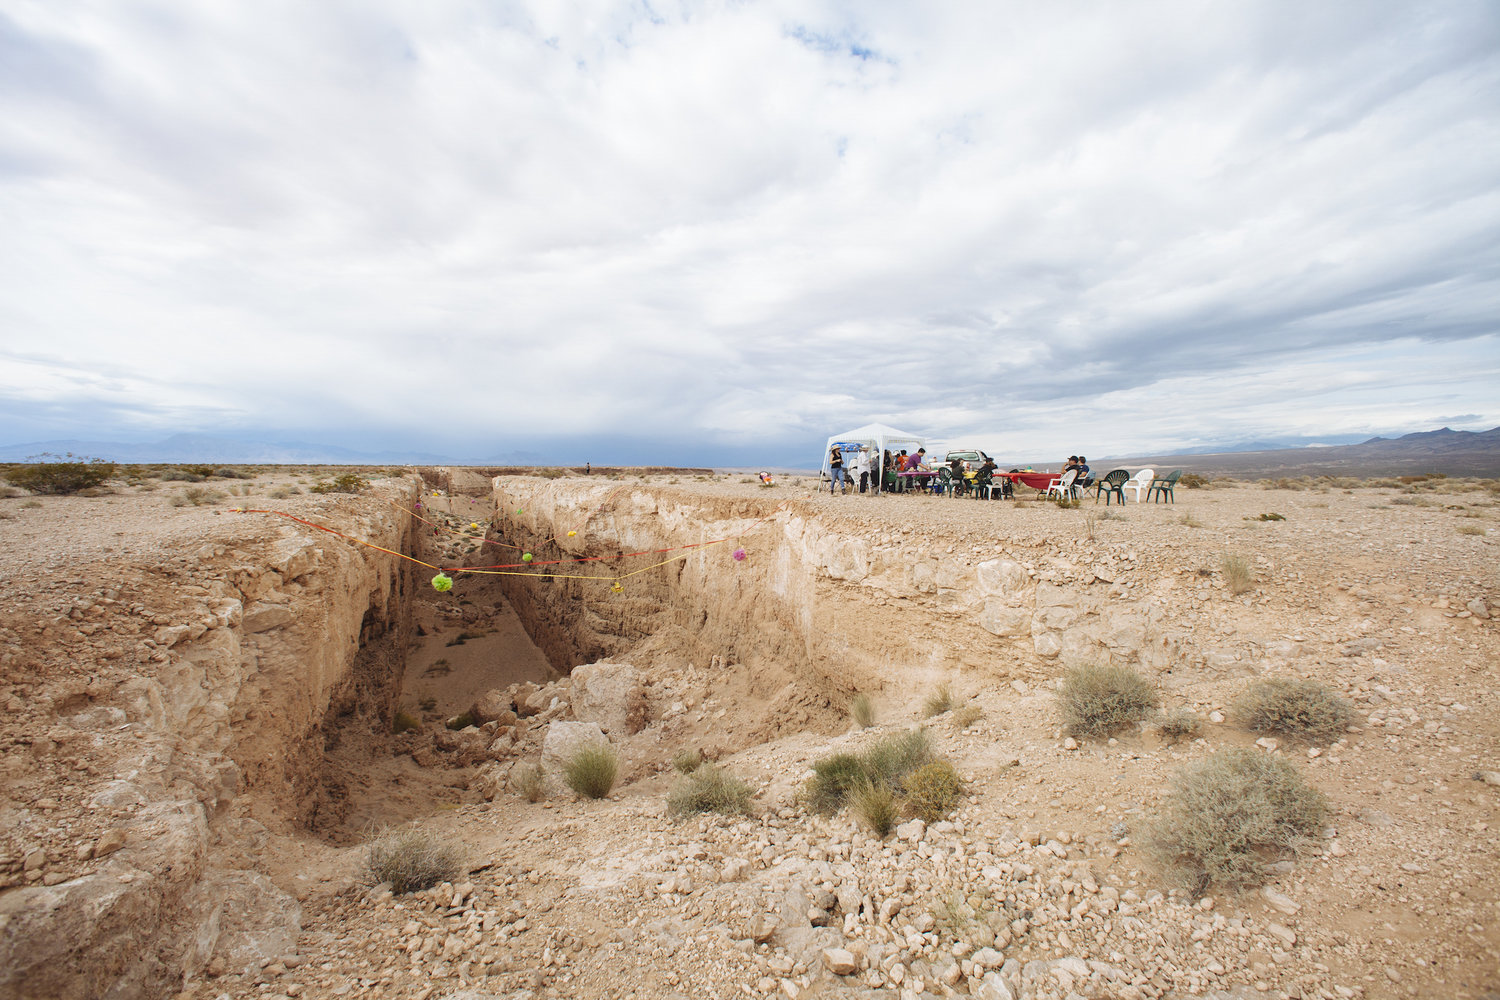 Justin Favela's  Family Fiesta at Michael Heizer's Double Negative located in the Moapa Valley on Mormon Mesa near Overton, Nevada on May 9, 2015. Favela's video documenting the performance was included in the Nevada Museum of Art Tilting the Basin exhibition in Reno and Las Vegas. Justin is a past  Nevada Arts Council Artist Fellowship  recipient, and his work is on view in Justin Favela and Ramiro Gomez, Sorry For the Mess at the Marjorie Barrick Museum of Art; in a solo exhibition, All You Can Eat, at the Houston Center for Contemporary Craft (opens June 1); and Birth, Death and Regeneration at the The Museum of Art and History at the McPherson Center, Santa Cruz, CA (July-October). Image courtesy the artist and Nevada Museum of Art, photo credit Mikayla Whitmore.